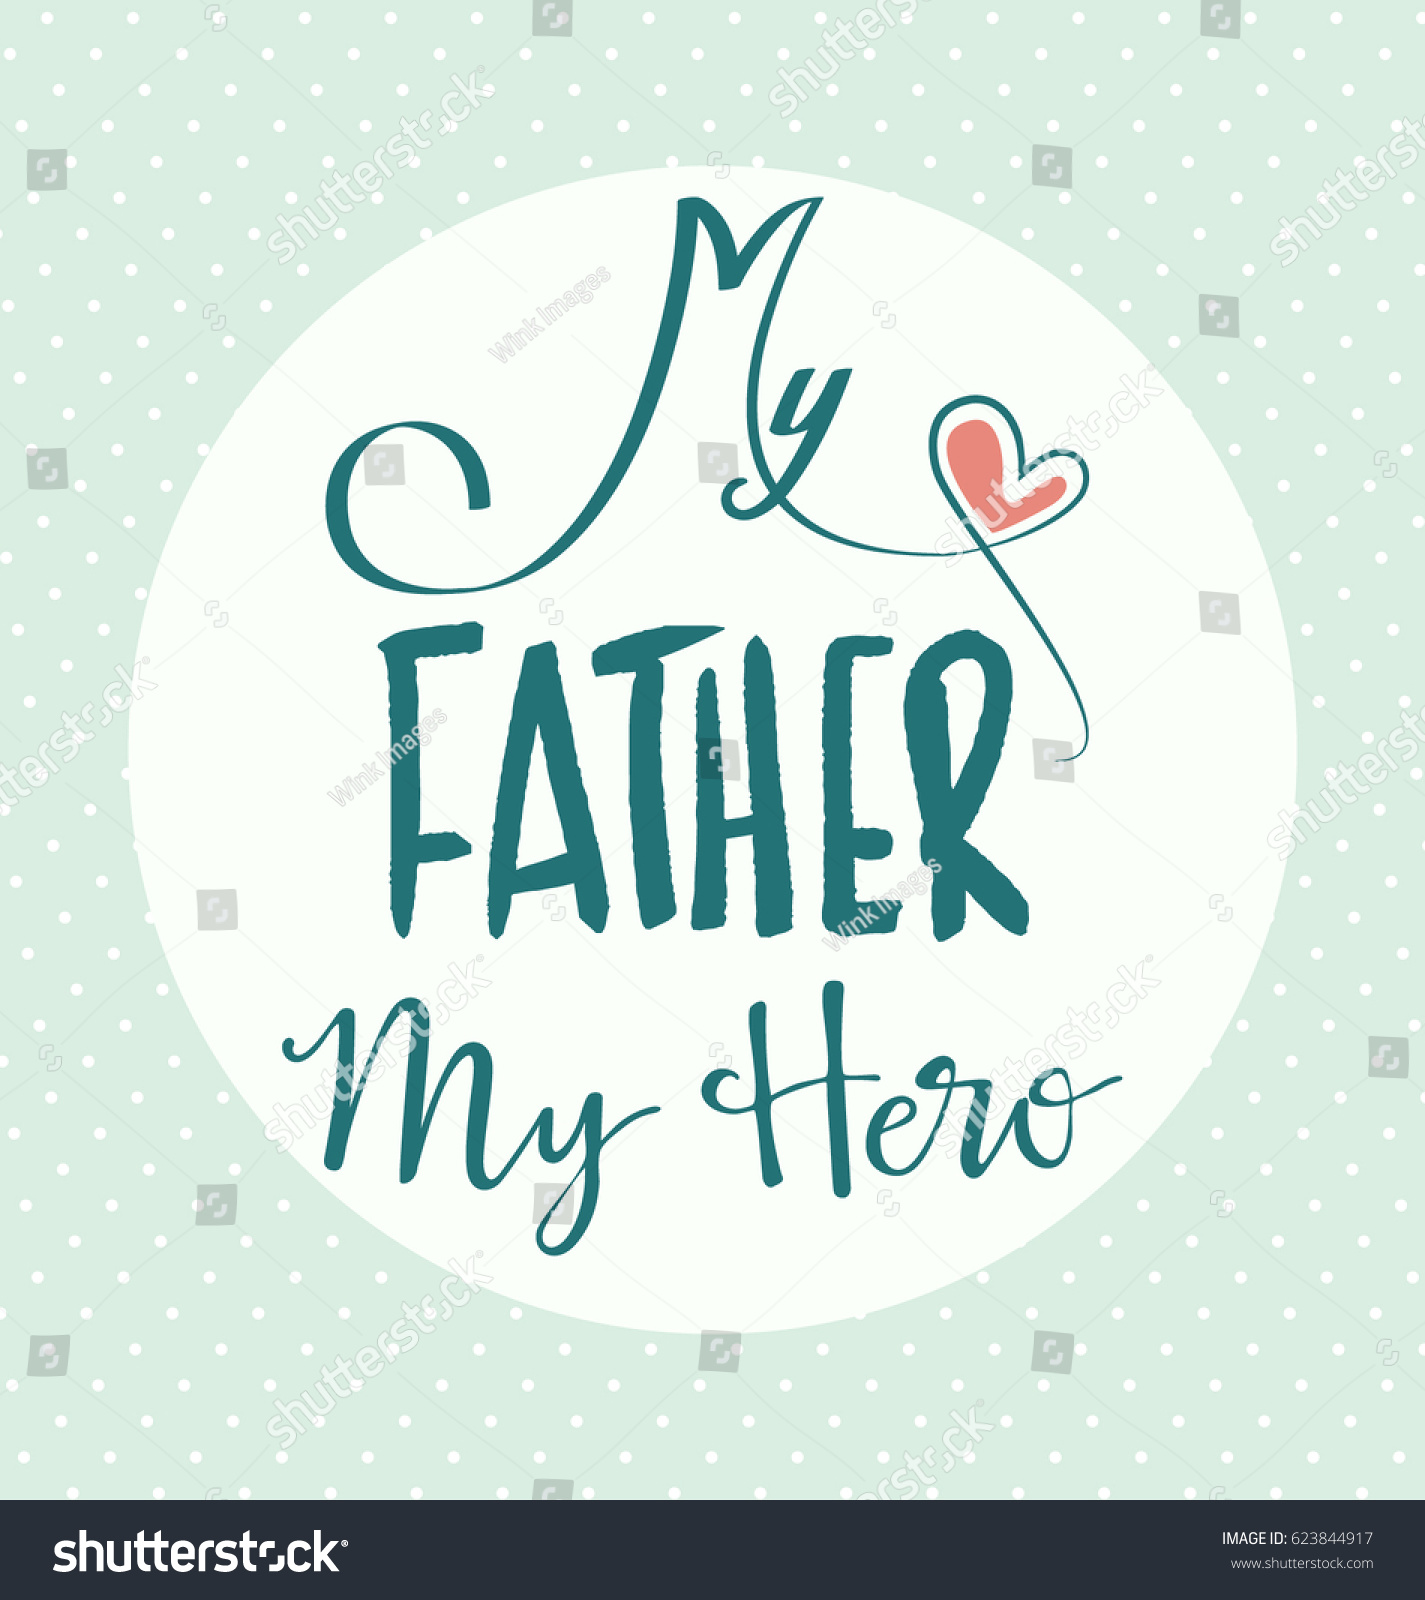 My Father My Hero Typographic Vector Stock Vector Royalty Free